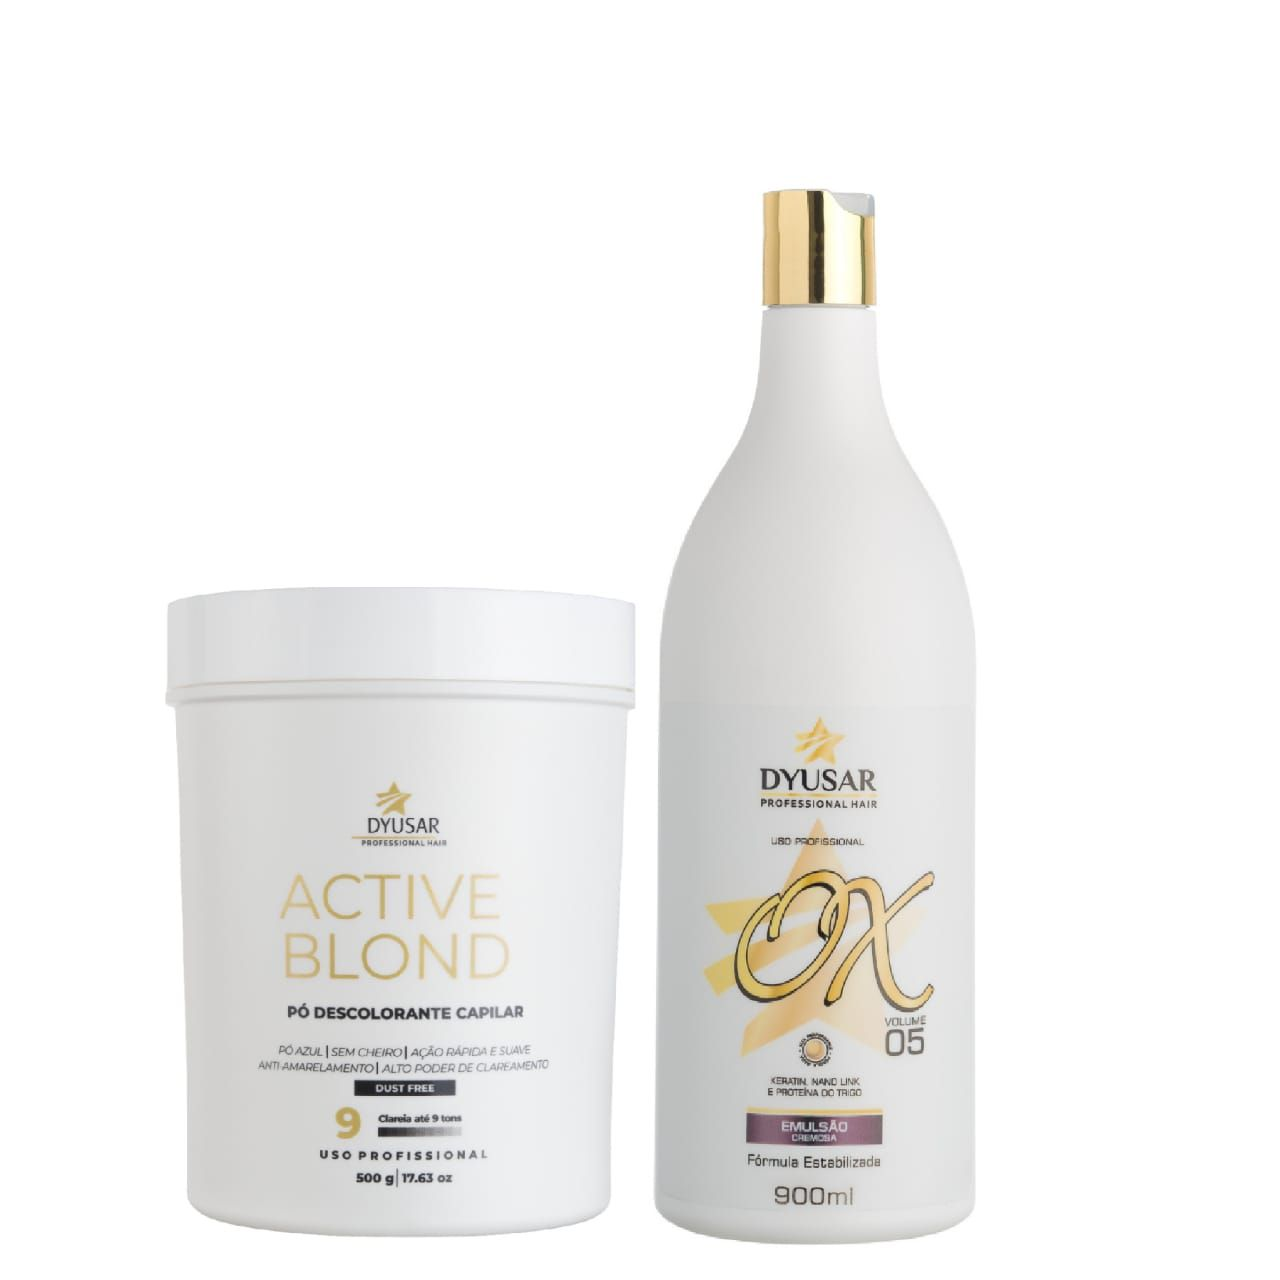 Kit Pó Active Blond + OX 5 Volumes DYUSAR